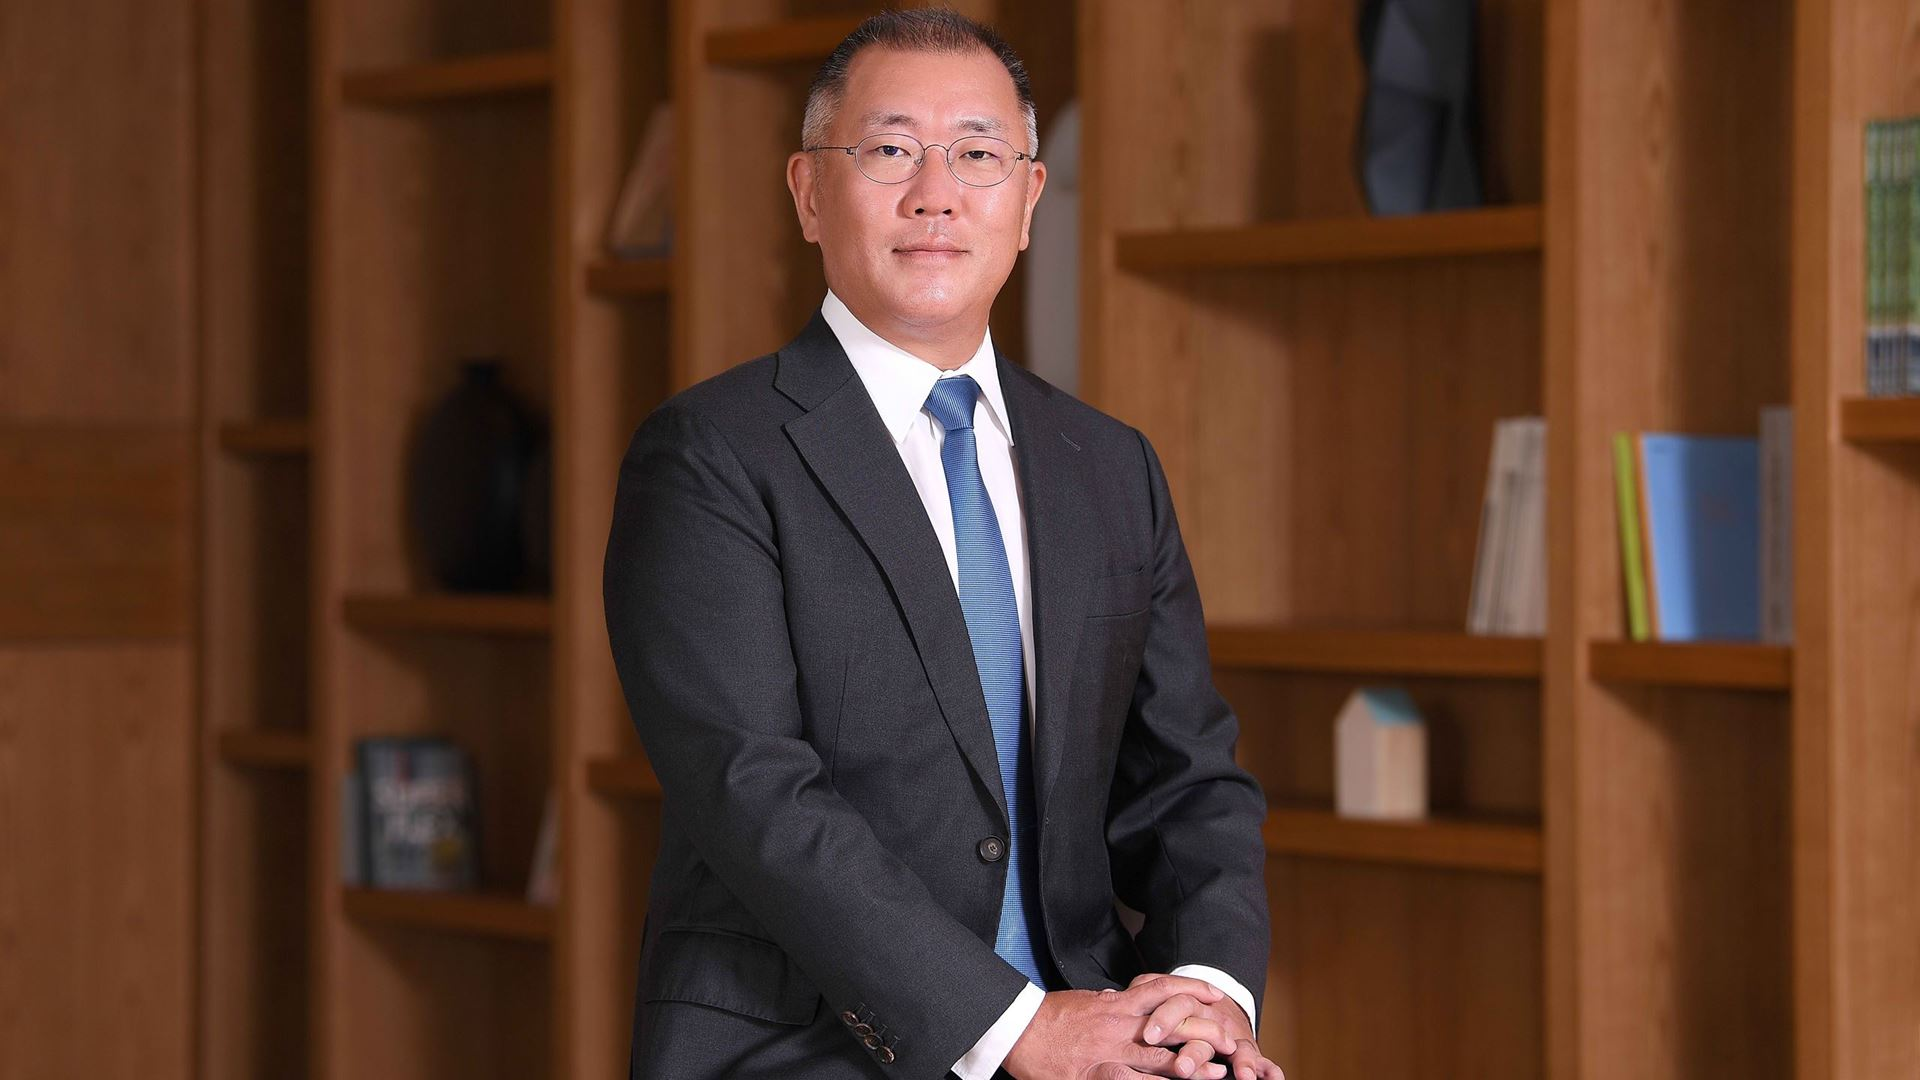 Euisun Chung Inaugurated as Chairman of Hyundai Motor Group, Opening a New Chapter in History - Image 4